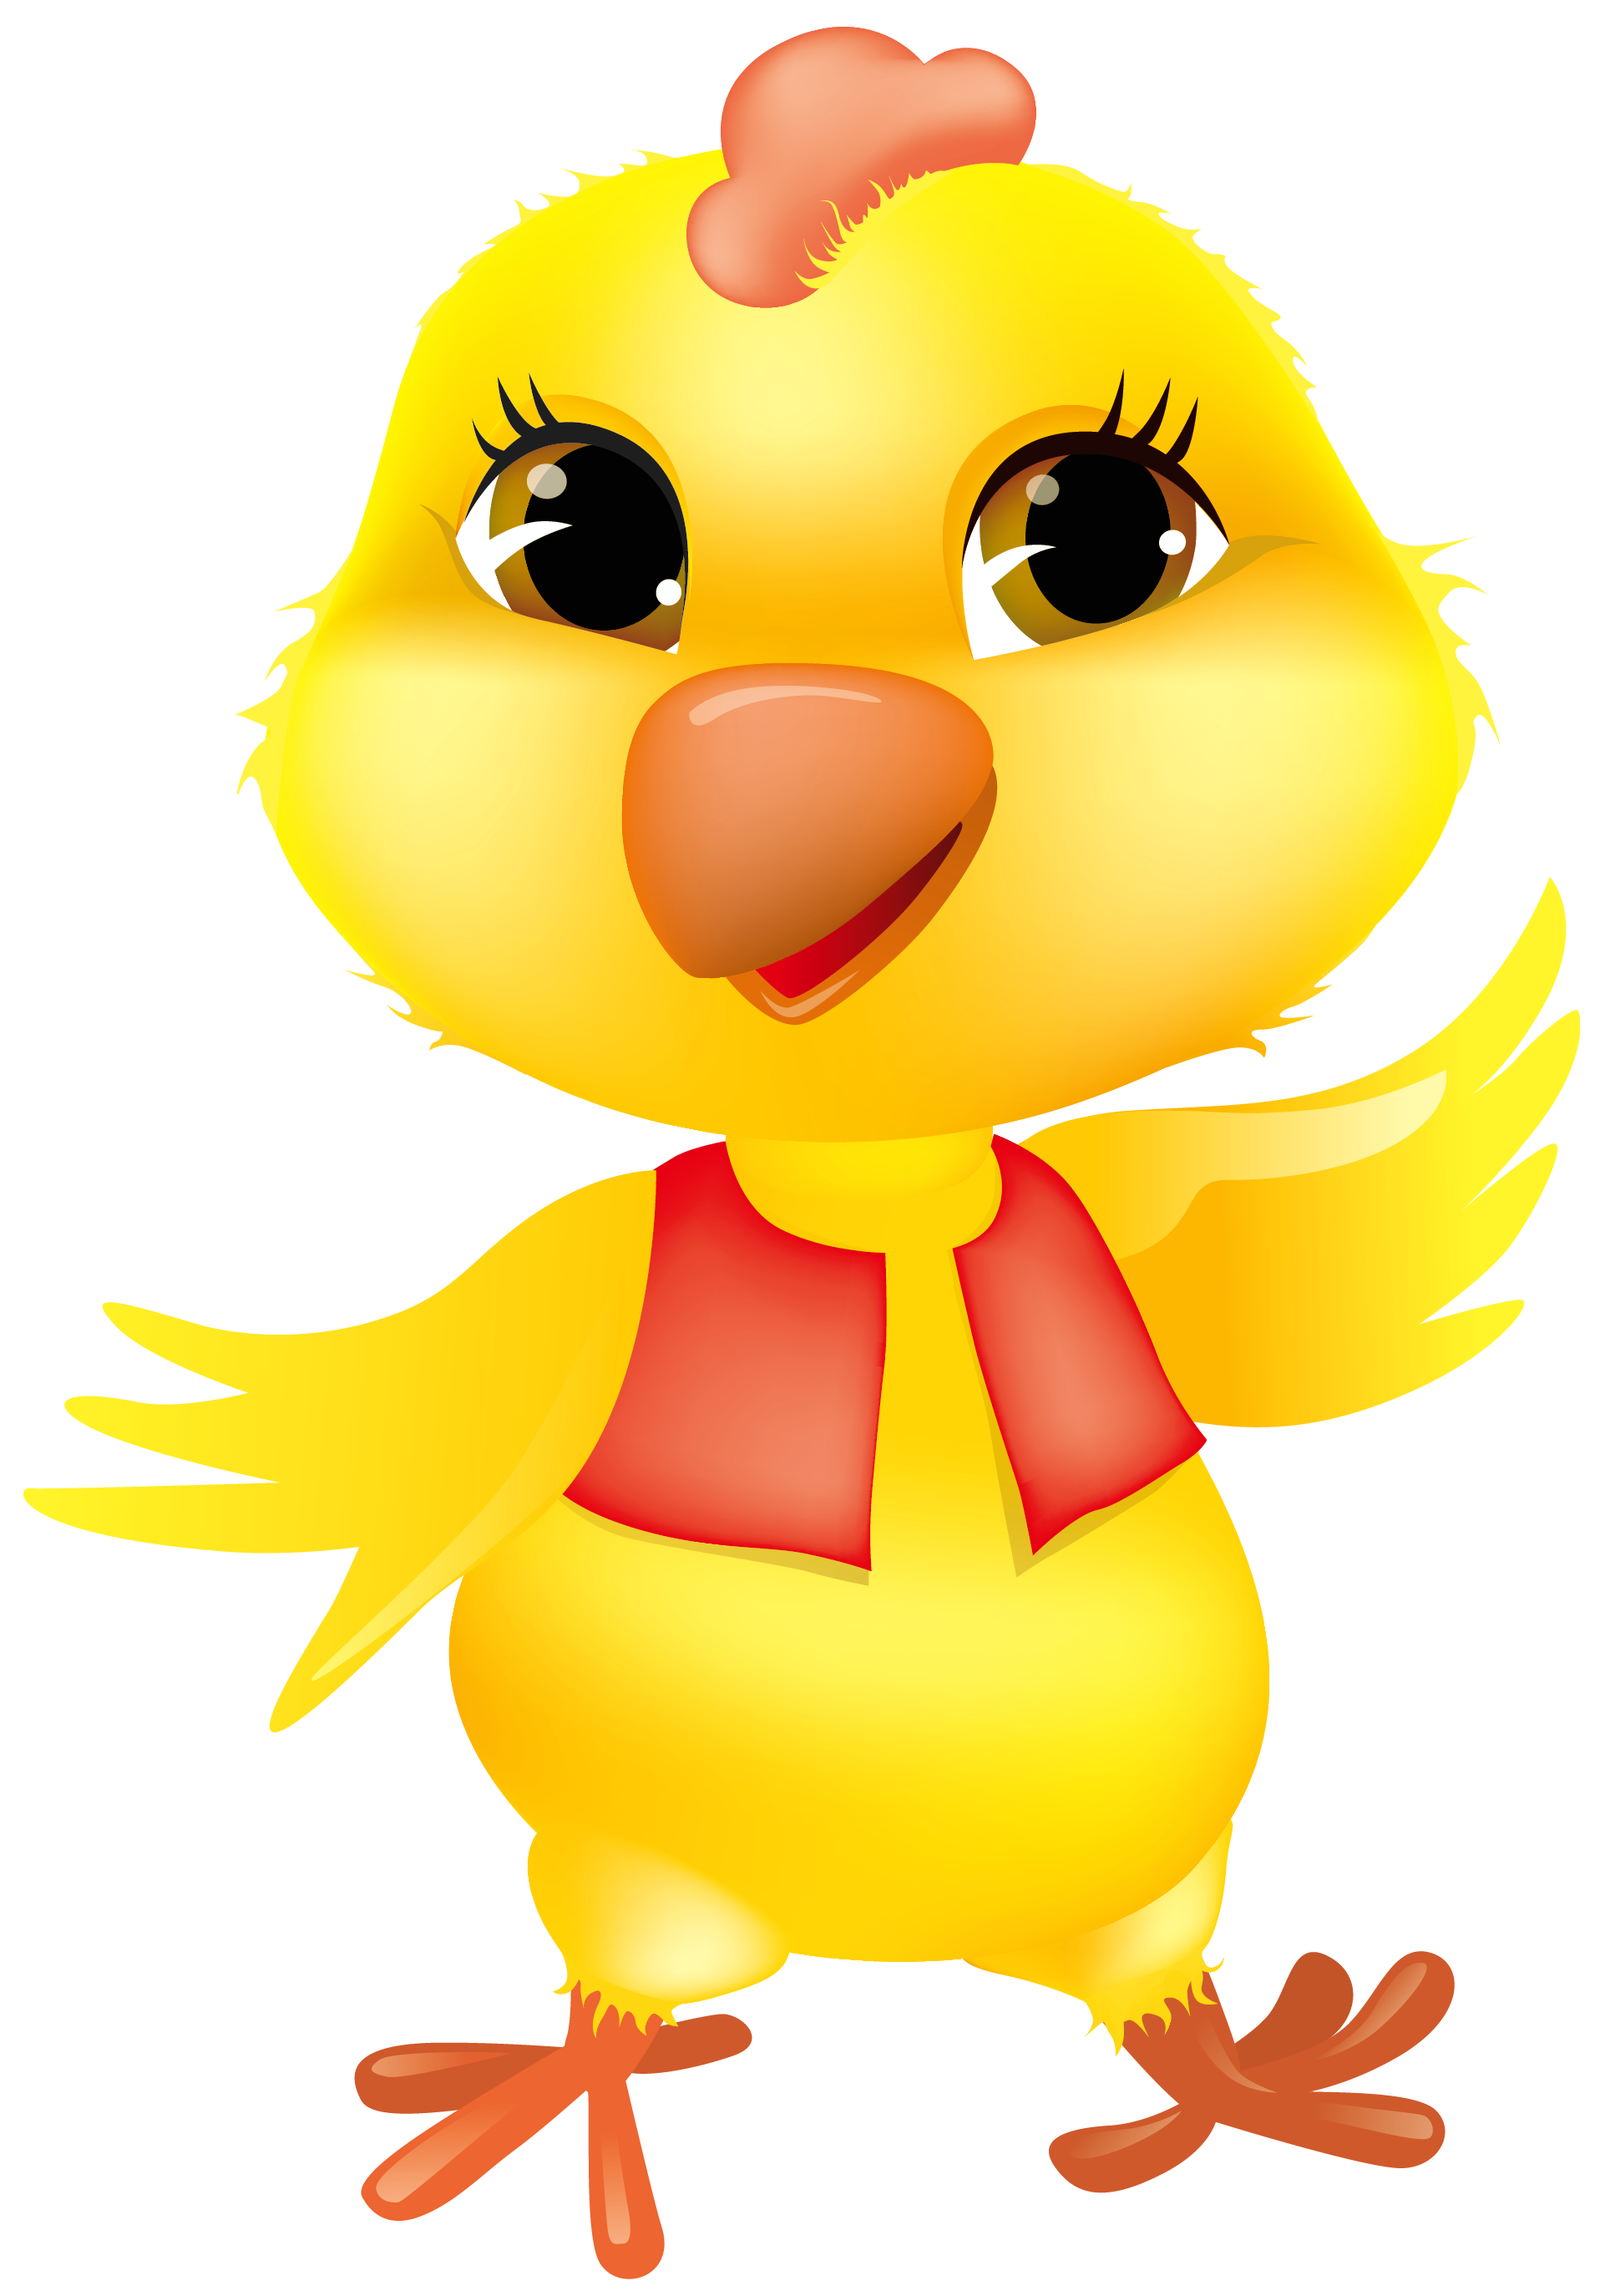 Ducks clipart easter. Chicken egg chick brown